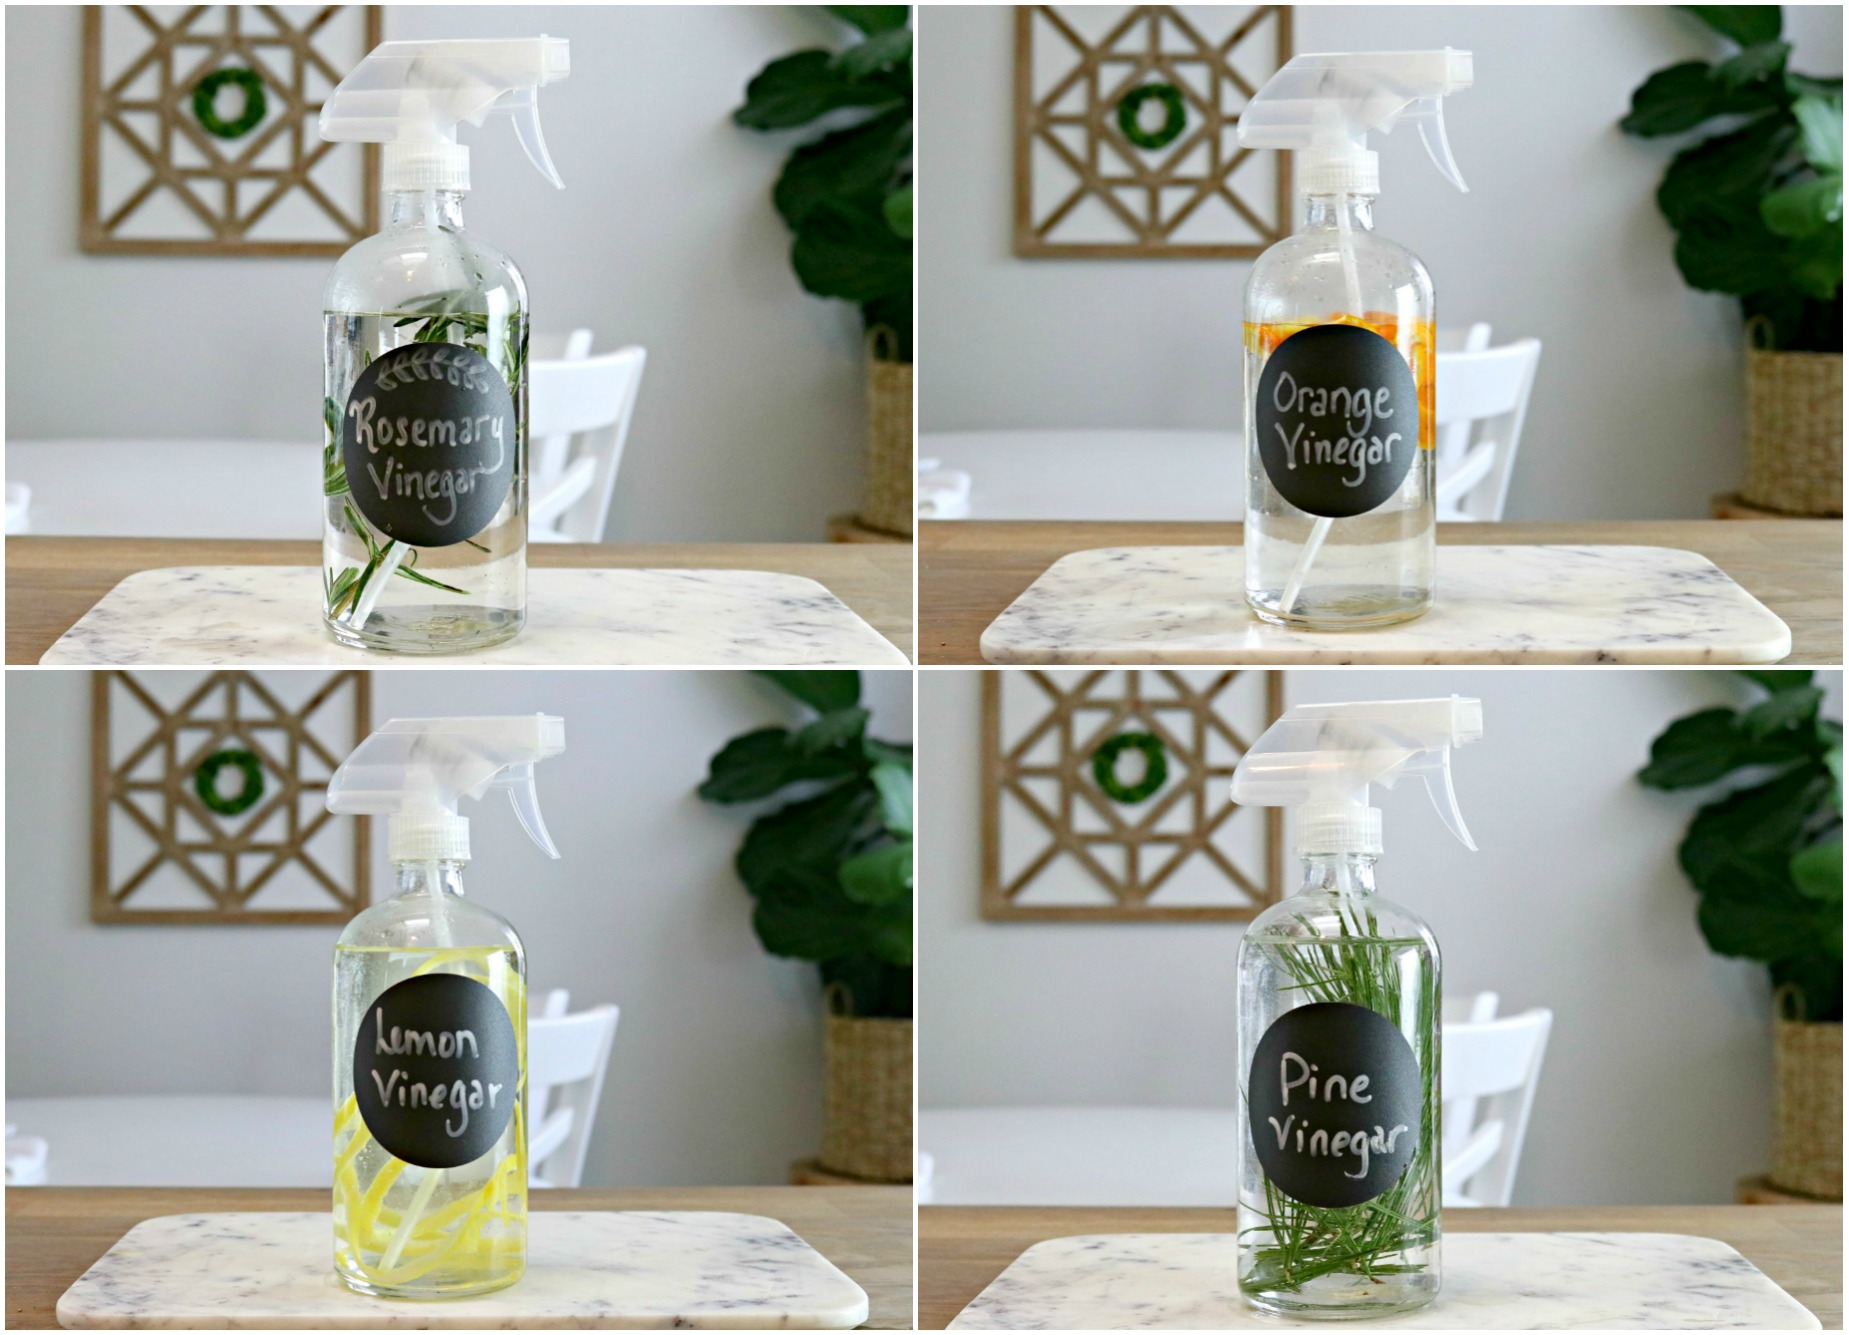 rosemary cleaning vinegar, orange cleaning vinegar, lemon cleaning vinegar and pine cleaning vinegar